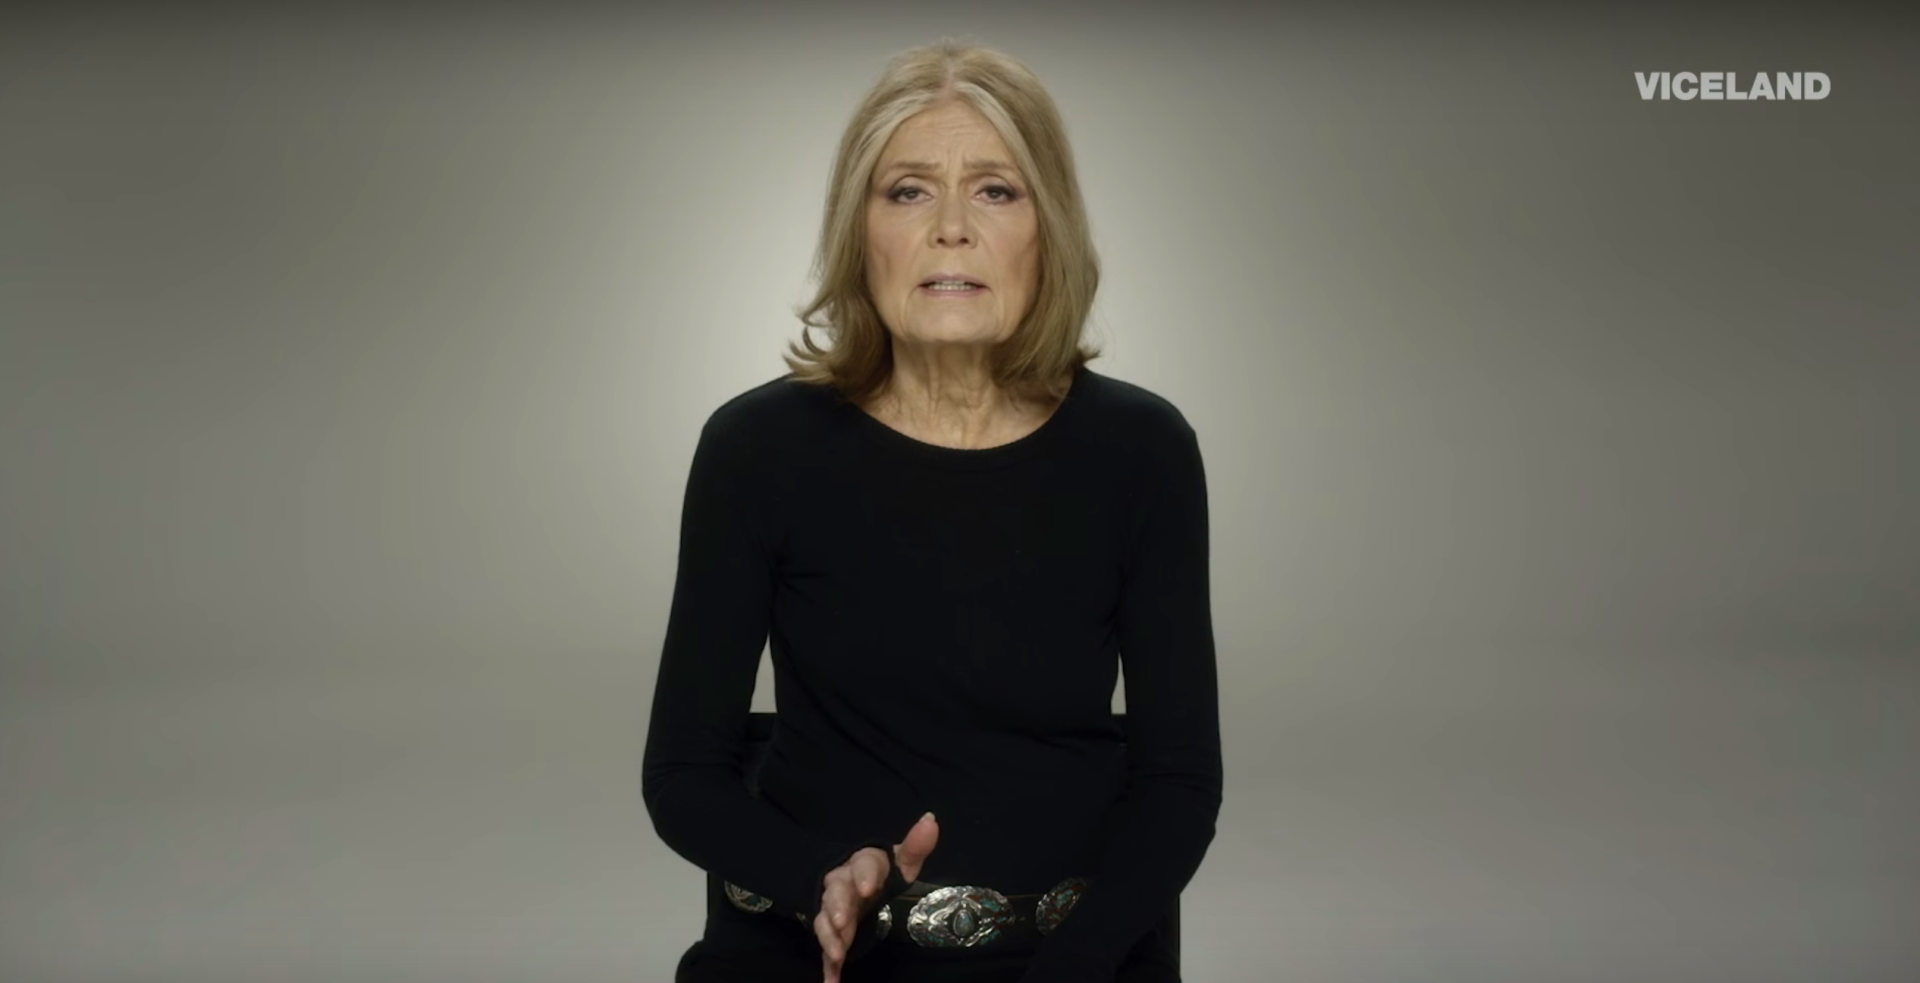 Gloria Steinem turns to TV to fight gender-based injustice